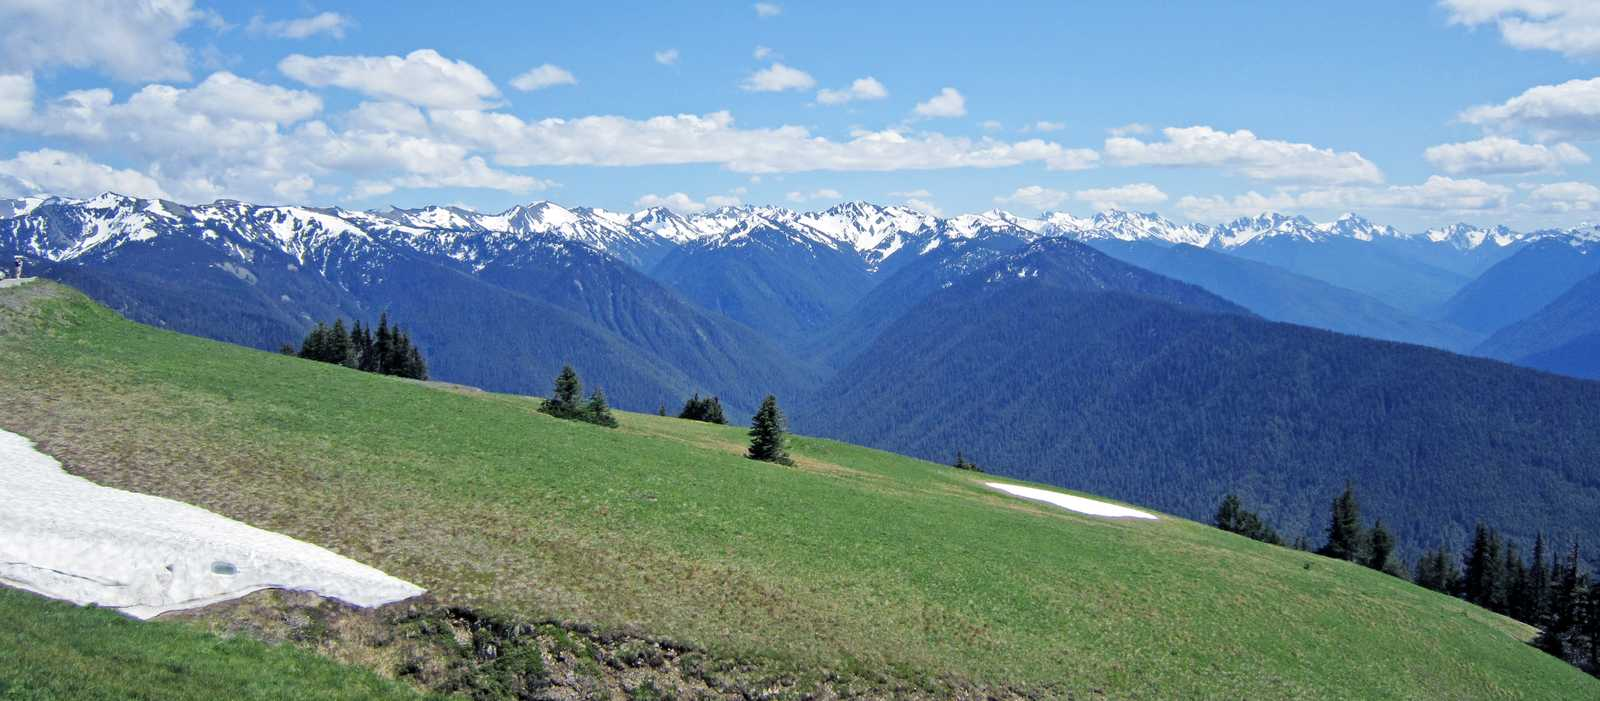 Hurricane Ridge im Olympic National Park